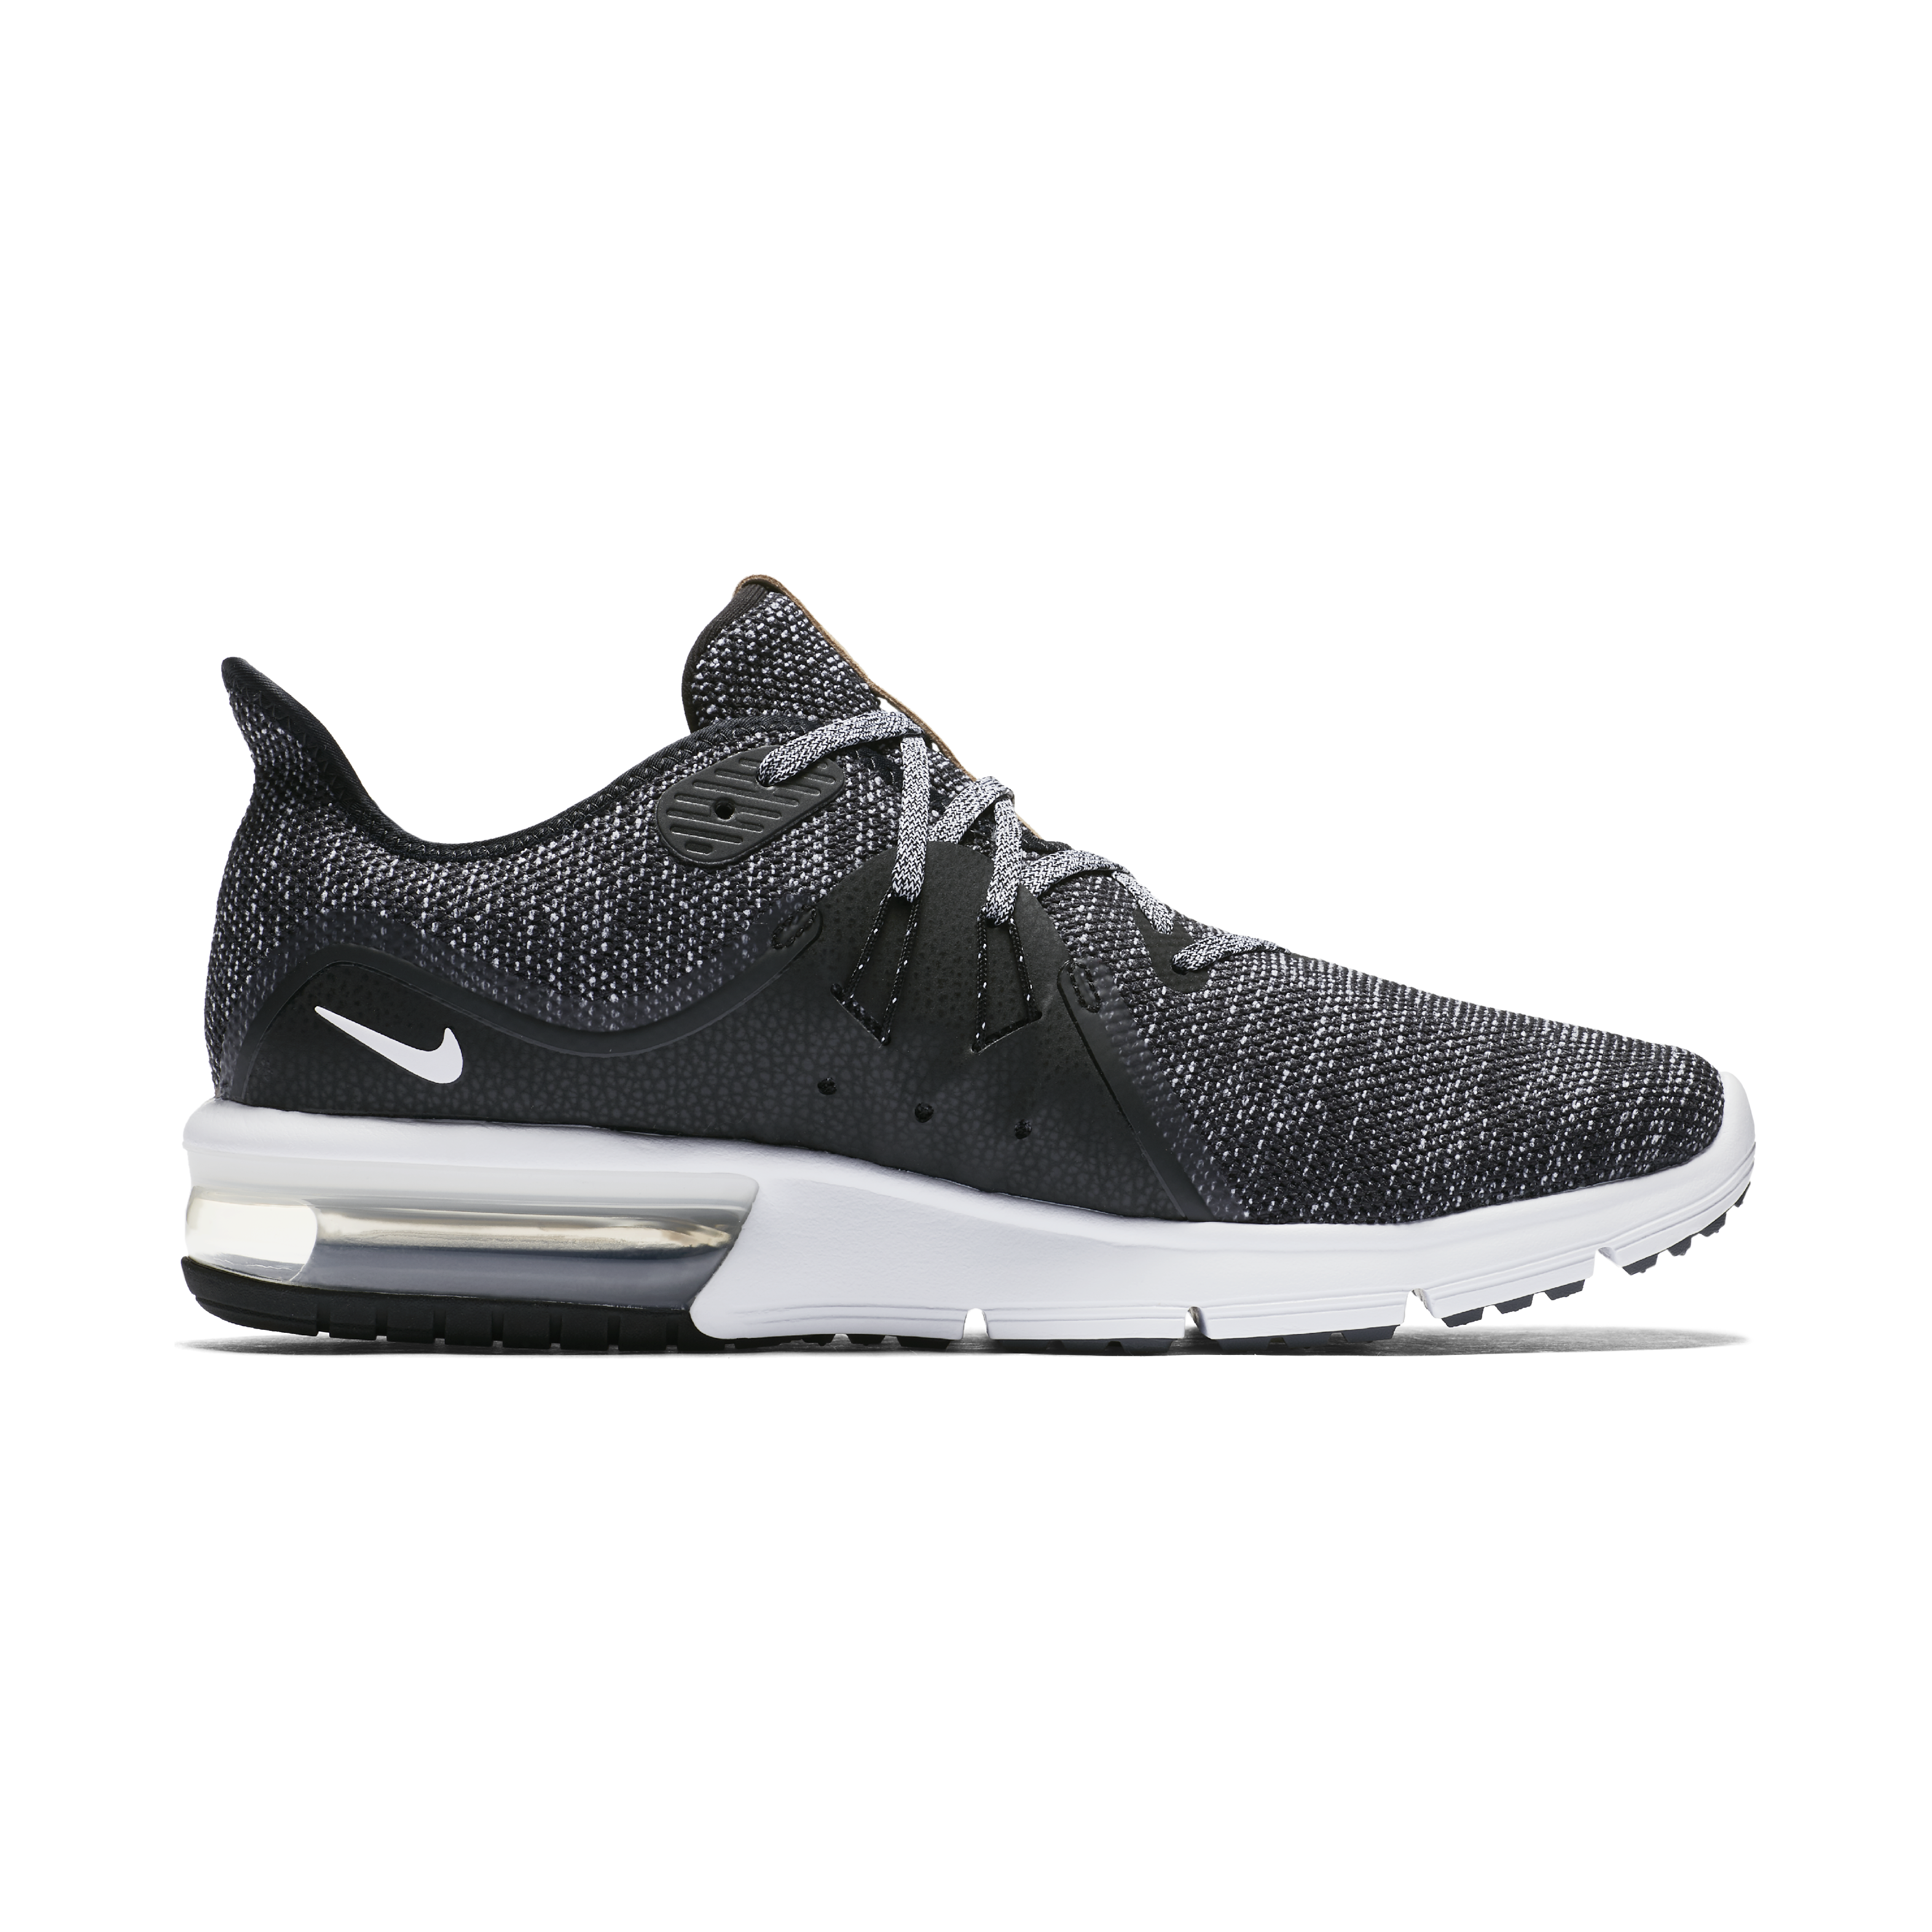 6872b8f7a6e NIKE AIR MAX SEQUENT 3 MENS - Poobie Naidoos